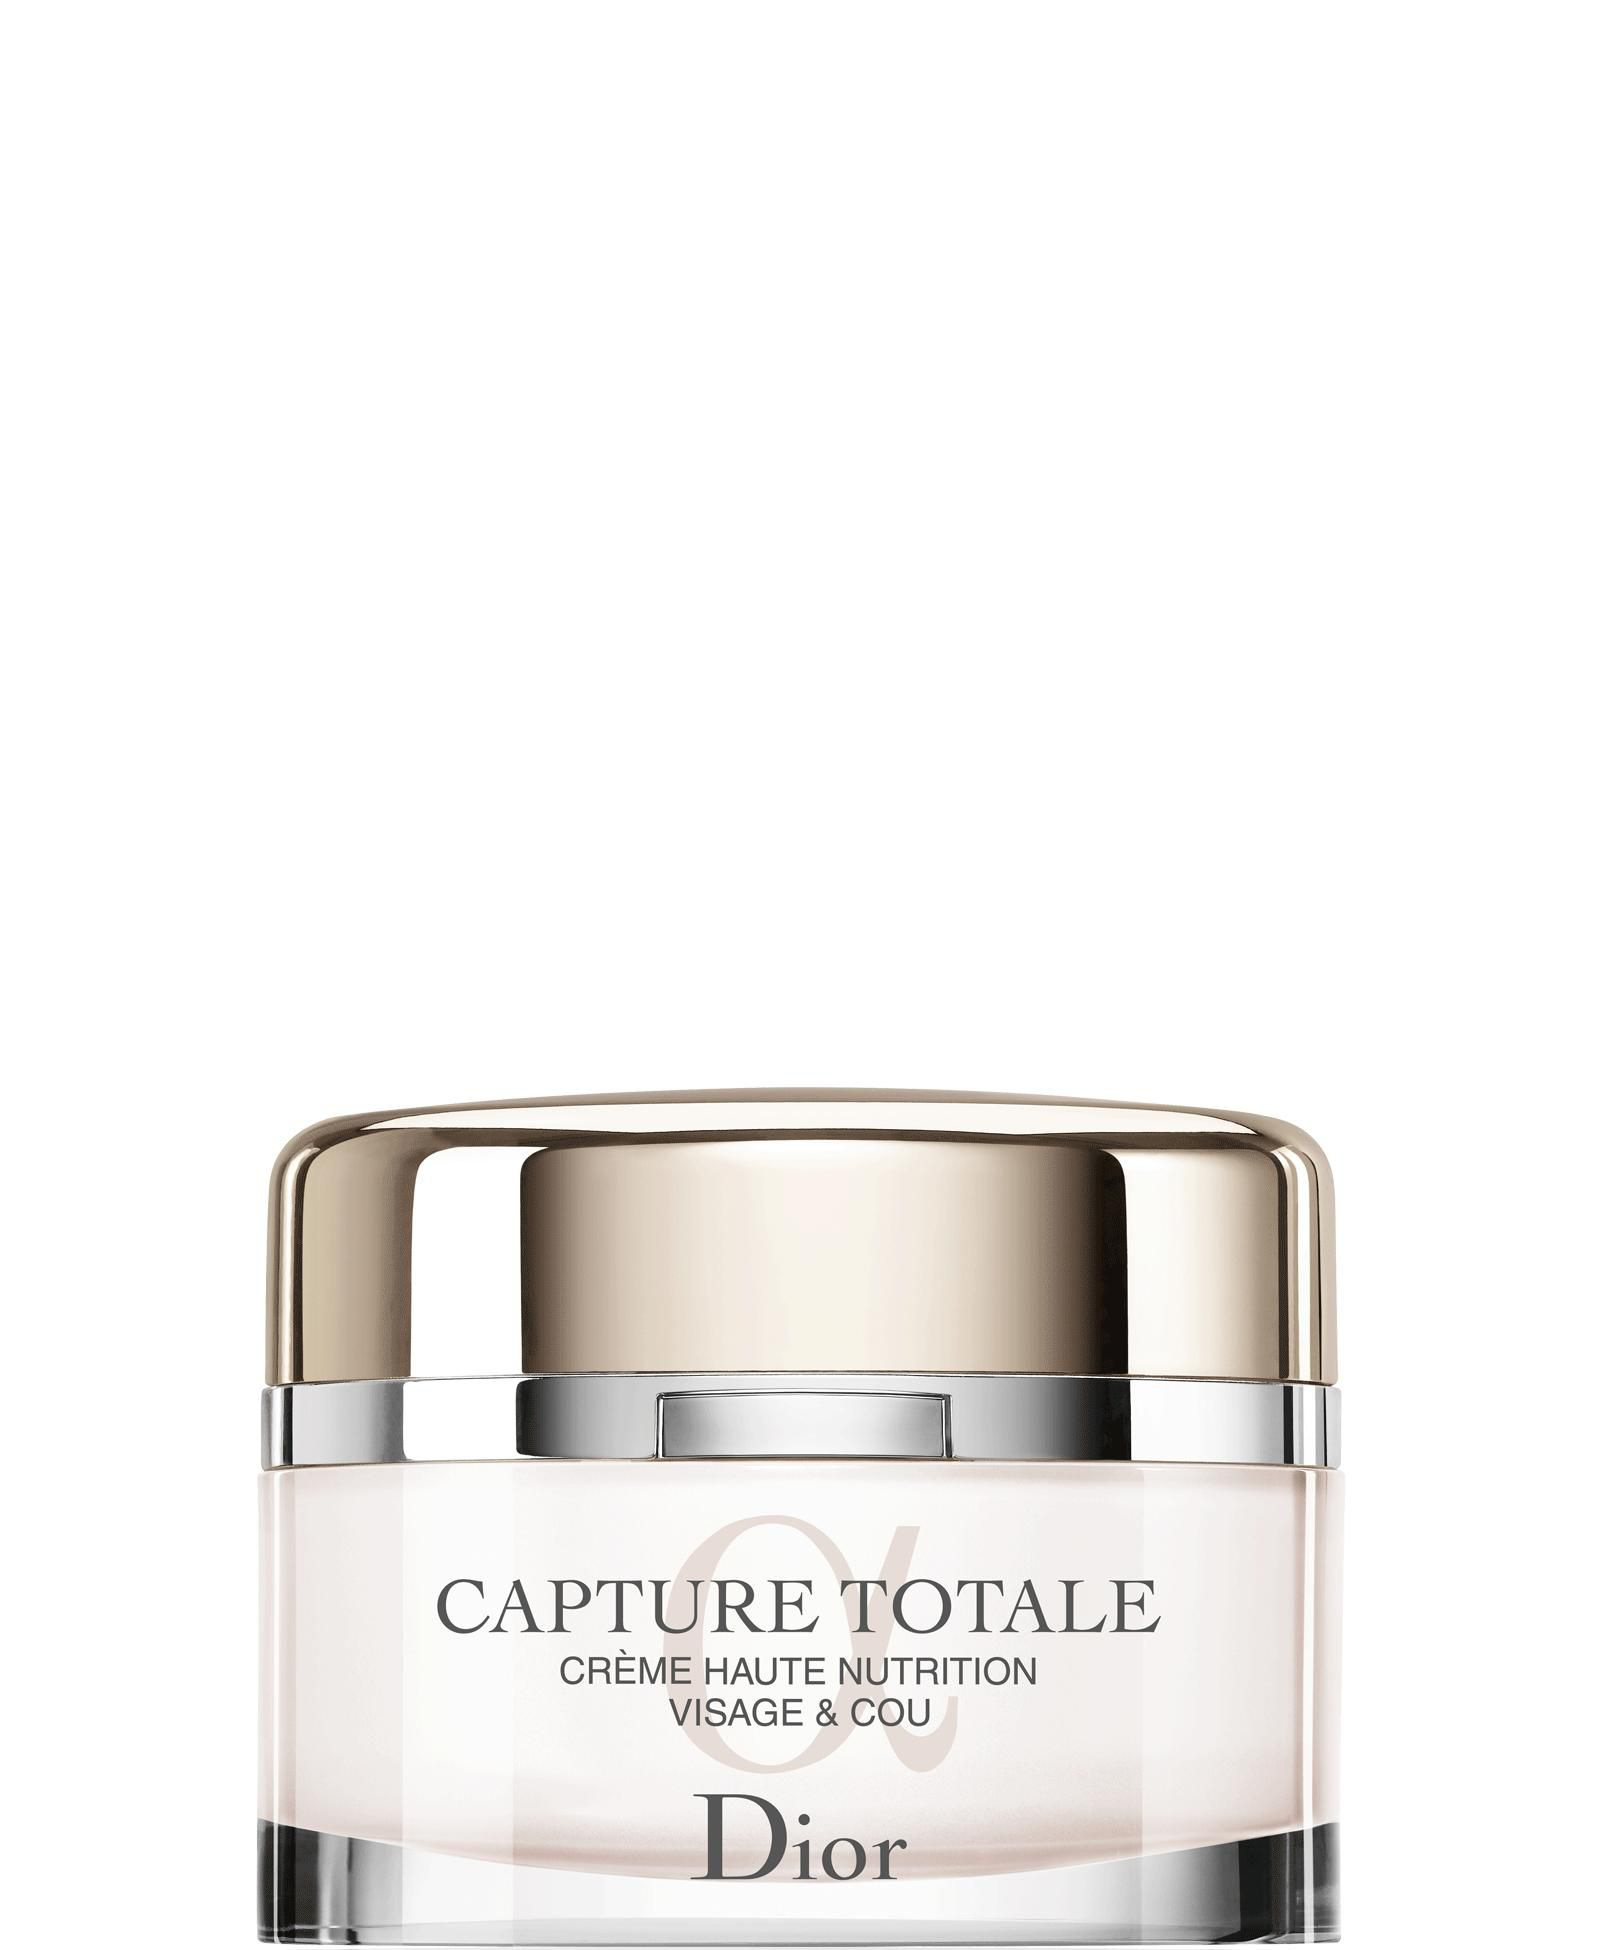 Capture Totale Haute Nutrition Creme